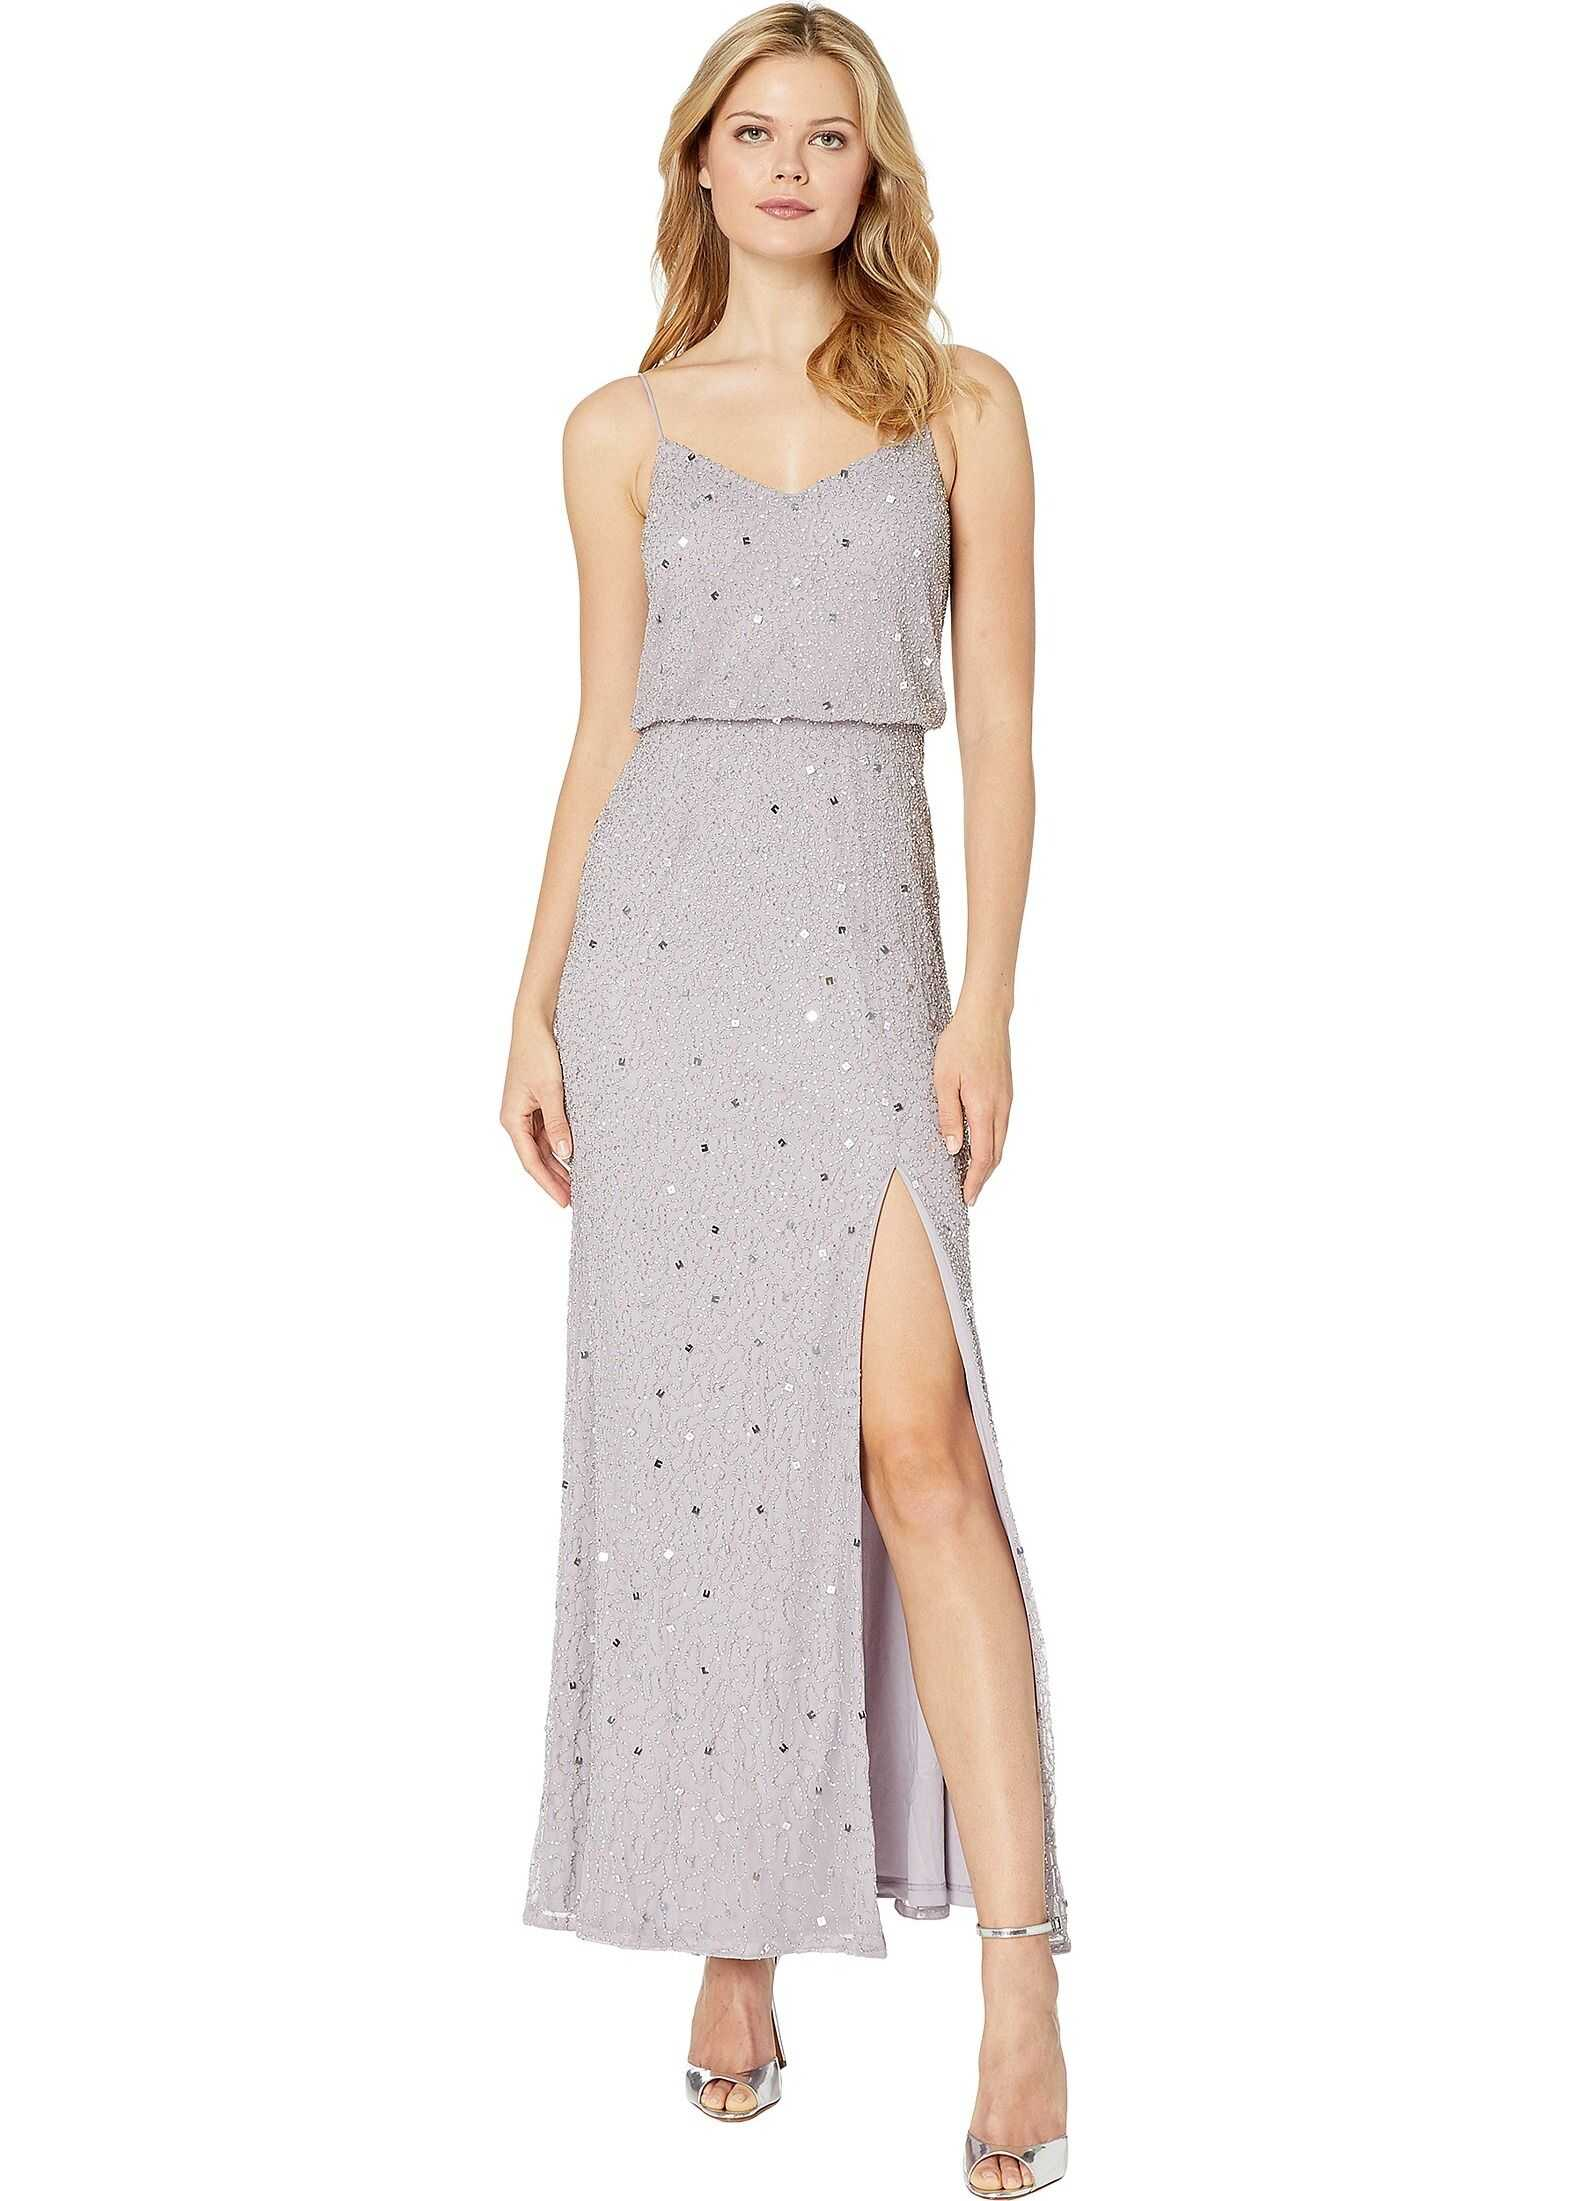 Adrianna Papell Beaded Blouson Evening Gown Lilac Grey